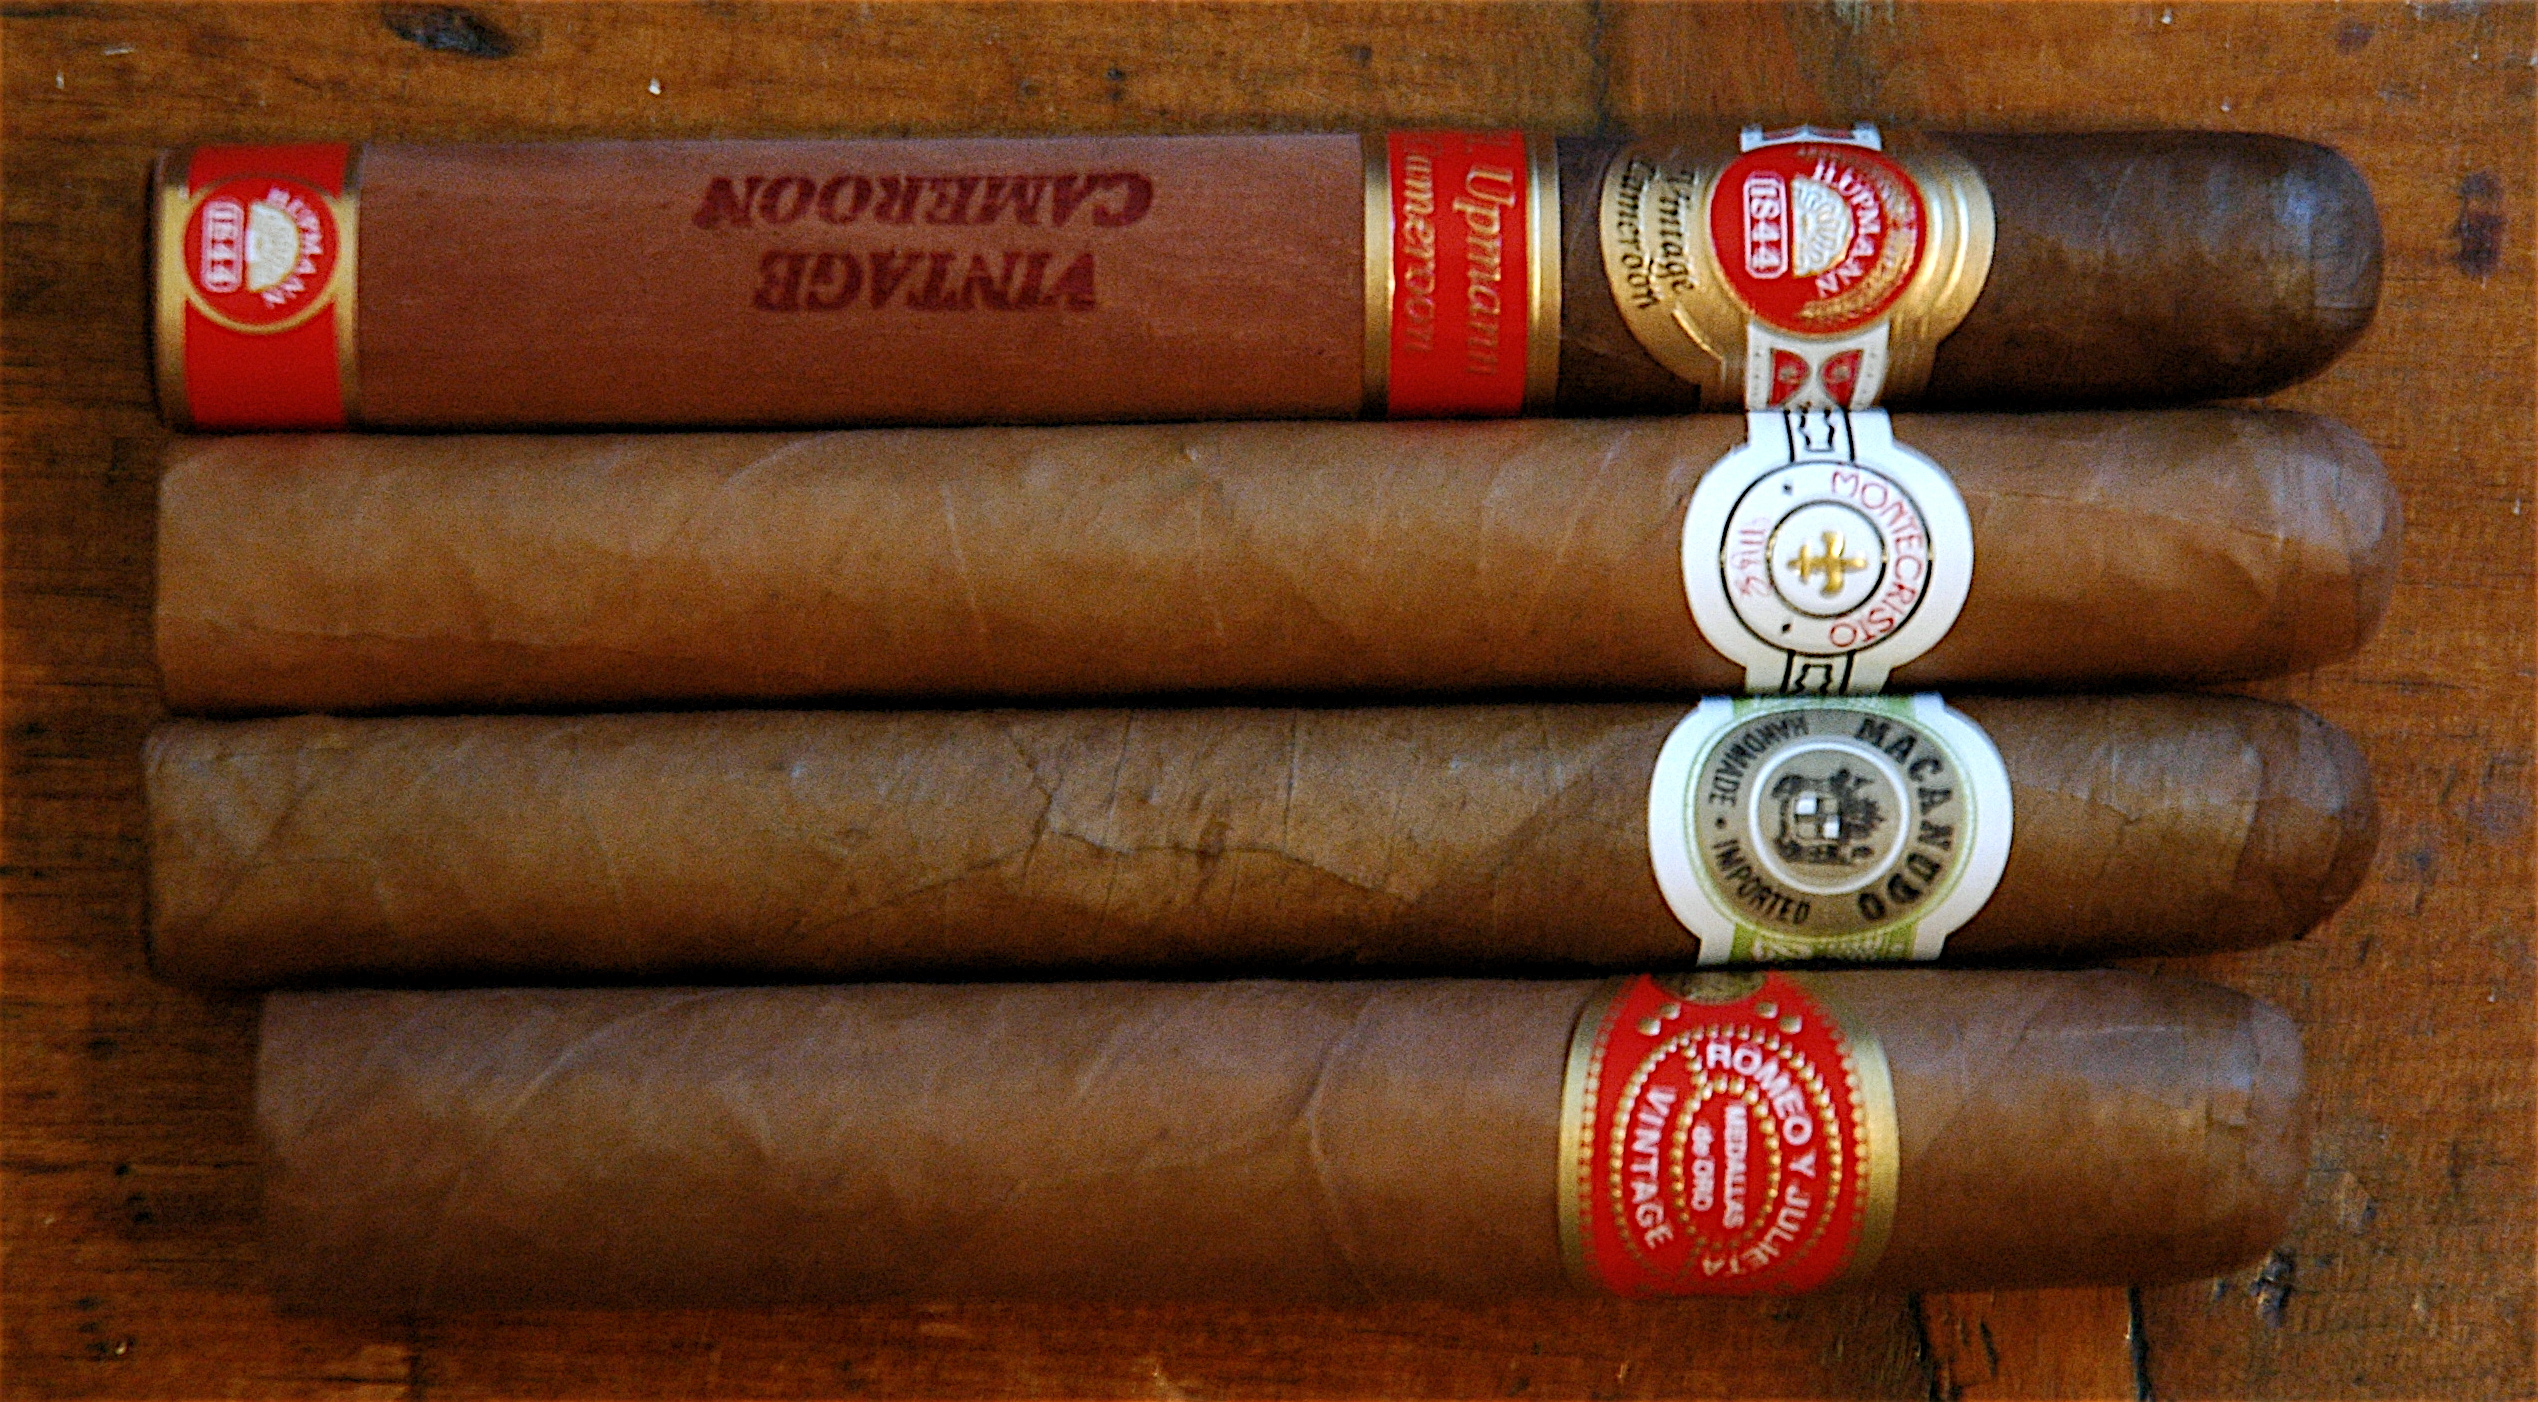 File:Four cigars.jpg